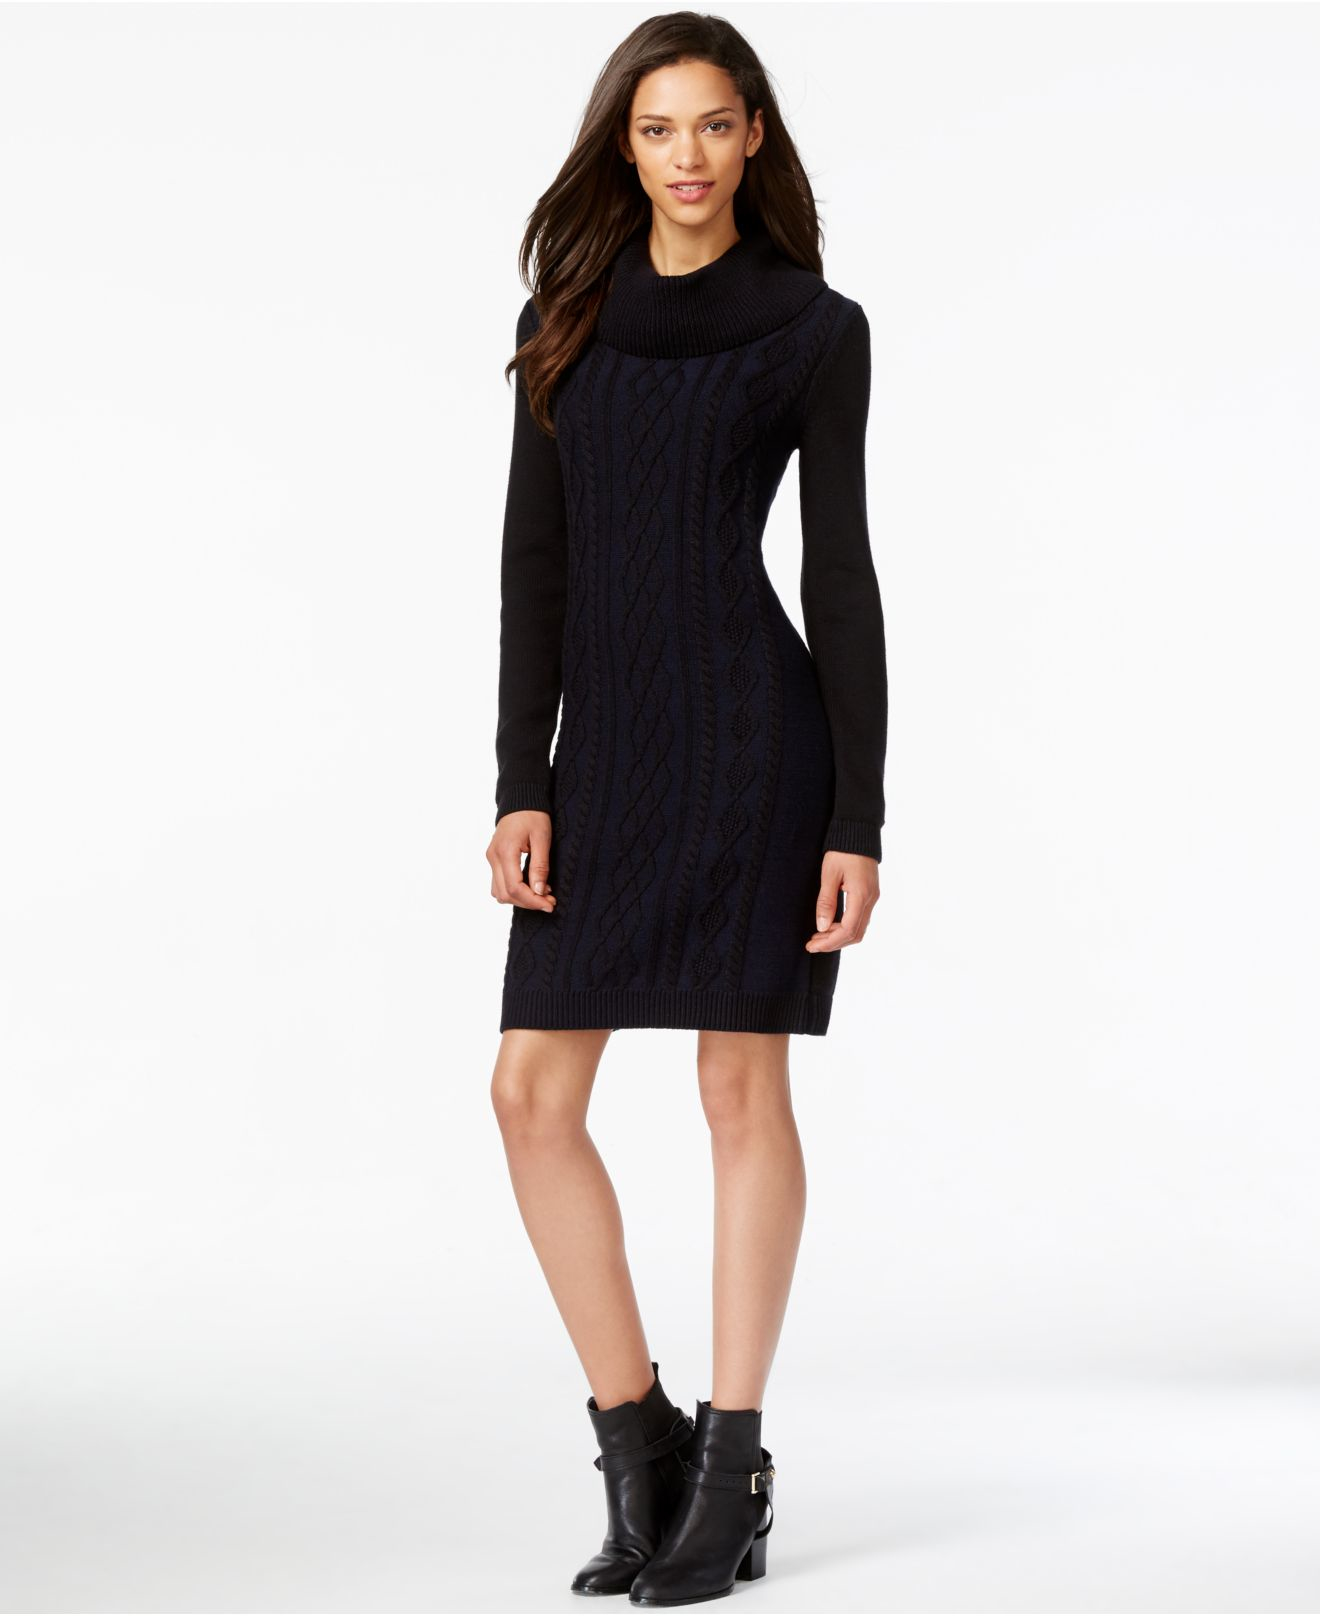 0df7eb4679a Tommy Hilfiger Cowl-neck Cable-knit Sweater Dress in Black - Lyst